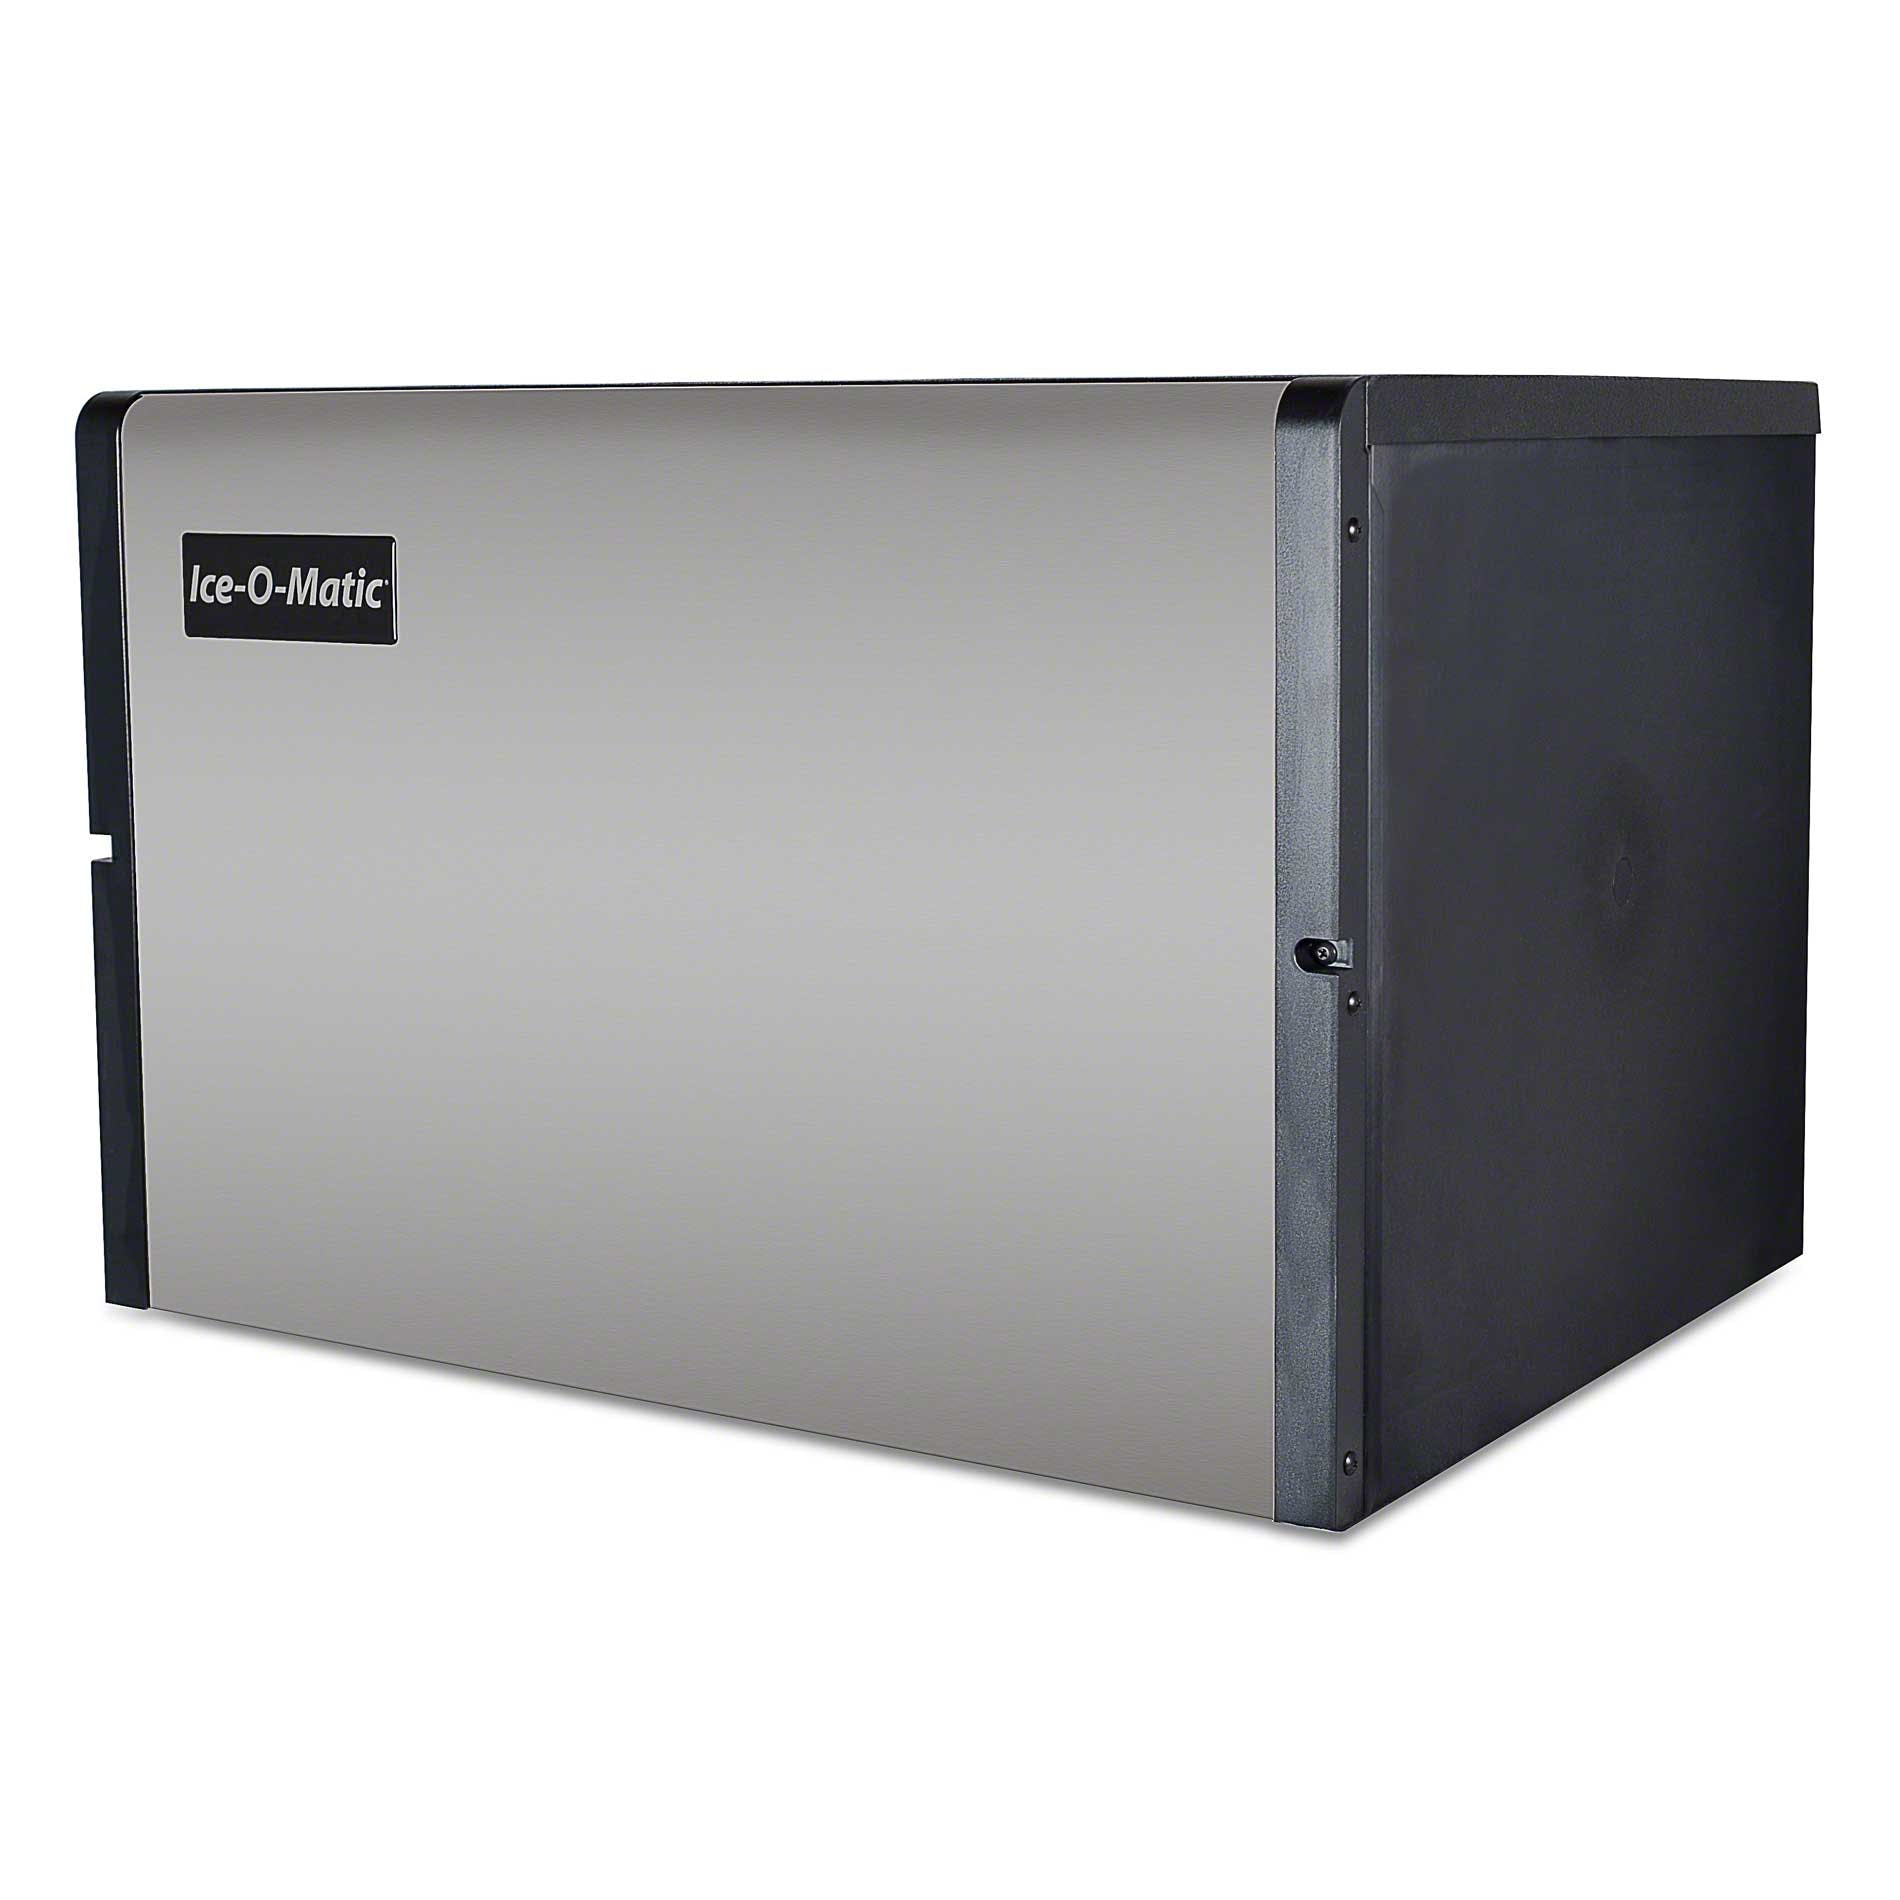 Ice-O-Matic - ICE0606HR 605 lb Half Cube Ice Machine Ice machine sold by Food Service Warehouse